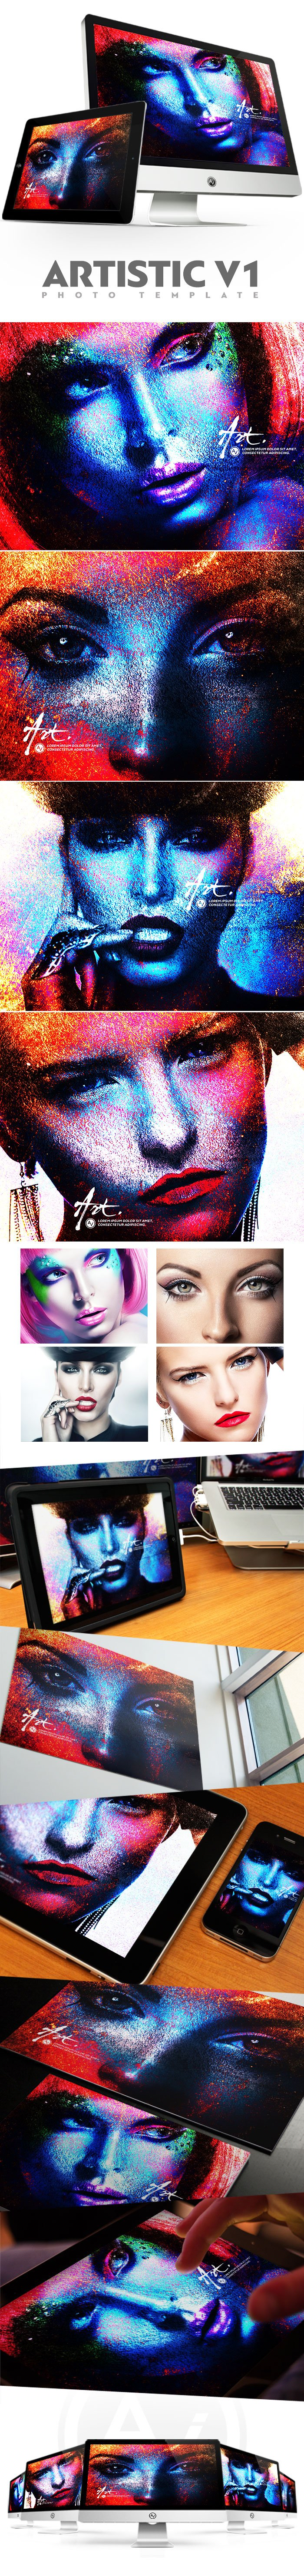 Photoshop Actions & Templates: Artistic Photo FX Bundle - preview artistic photo template v1 design by amorjesu